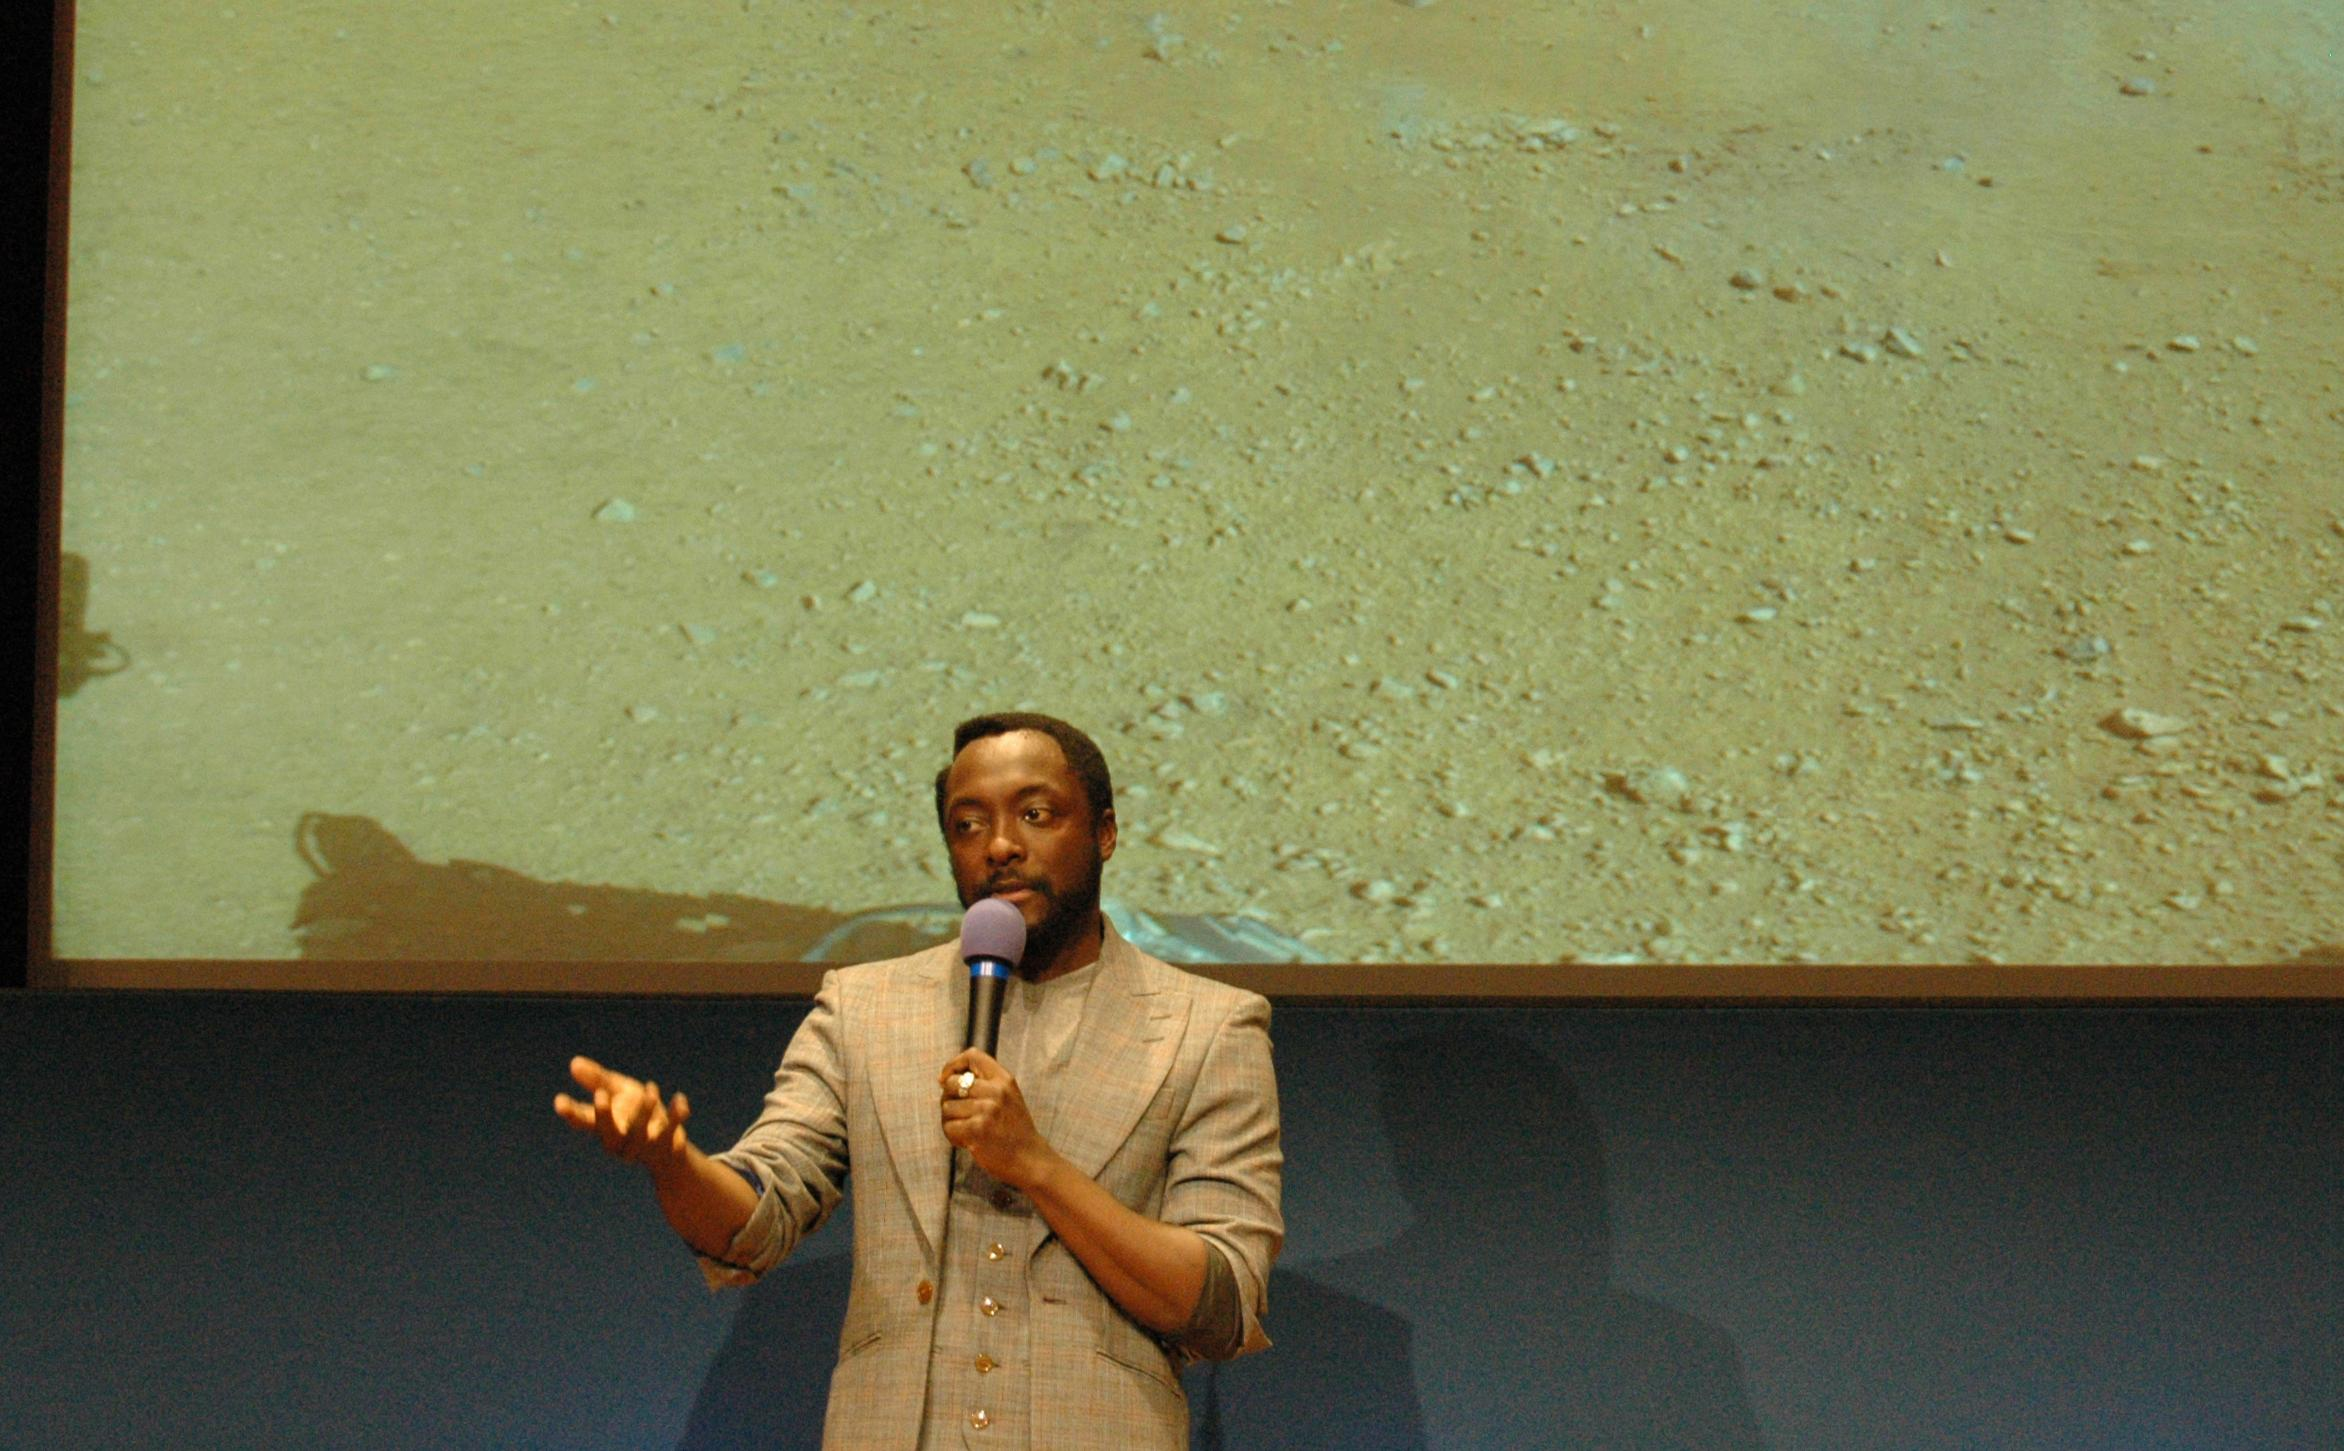 Musician will.i.am addresses a crowd of students at JPL during an event celebrating the first time in history that a recorded song has been beamed back to Earth from another planet.